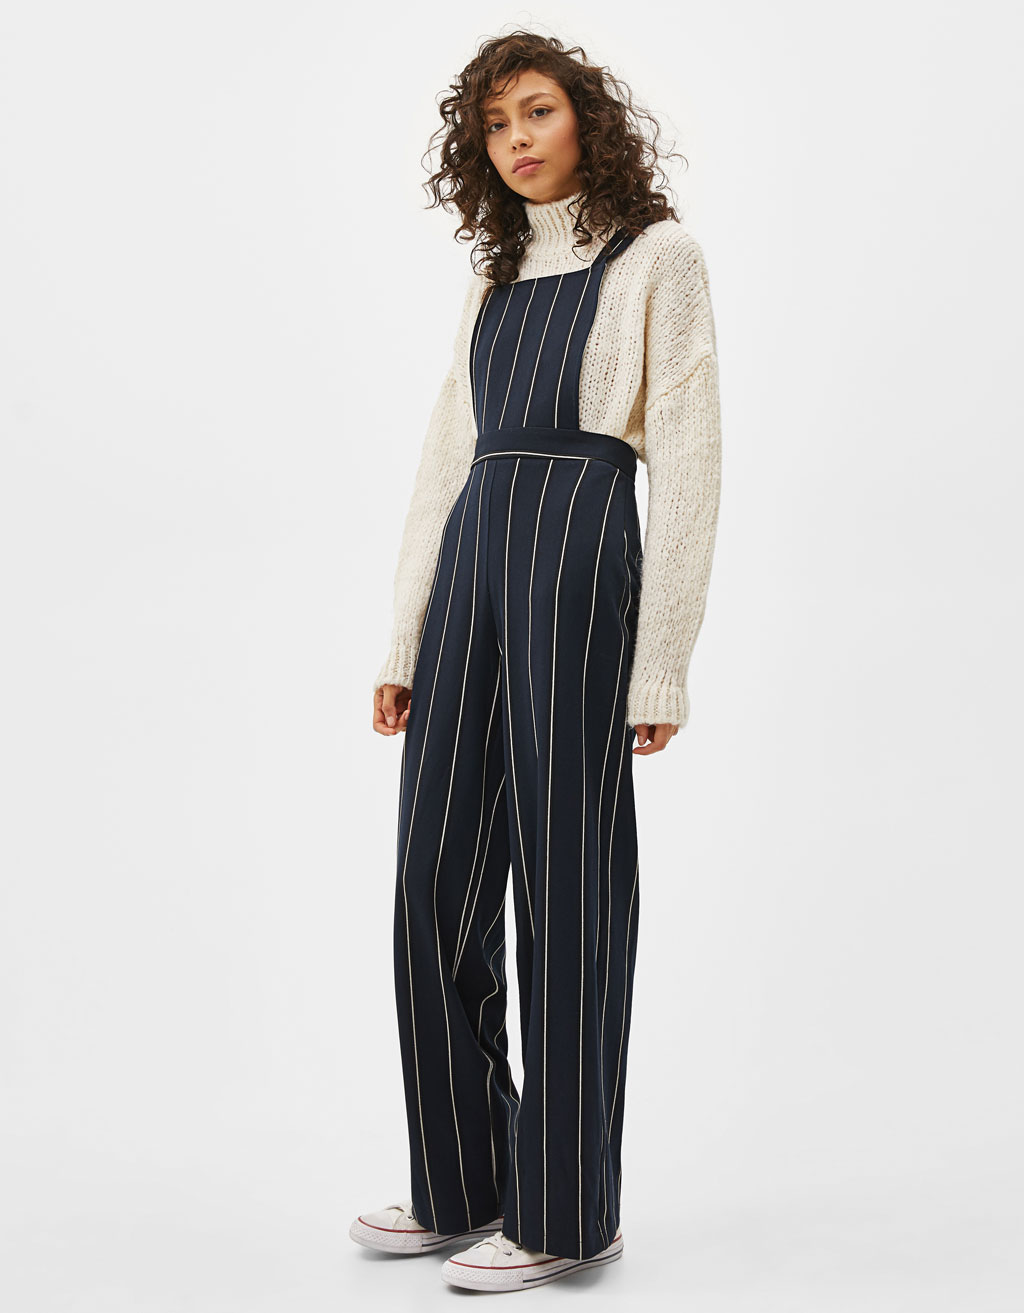 Long striped overalls